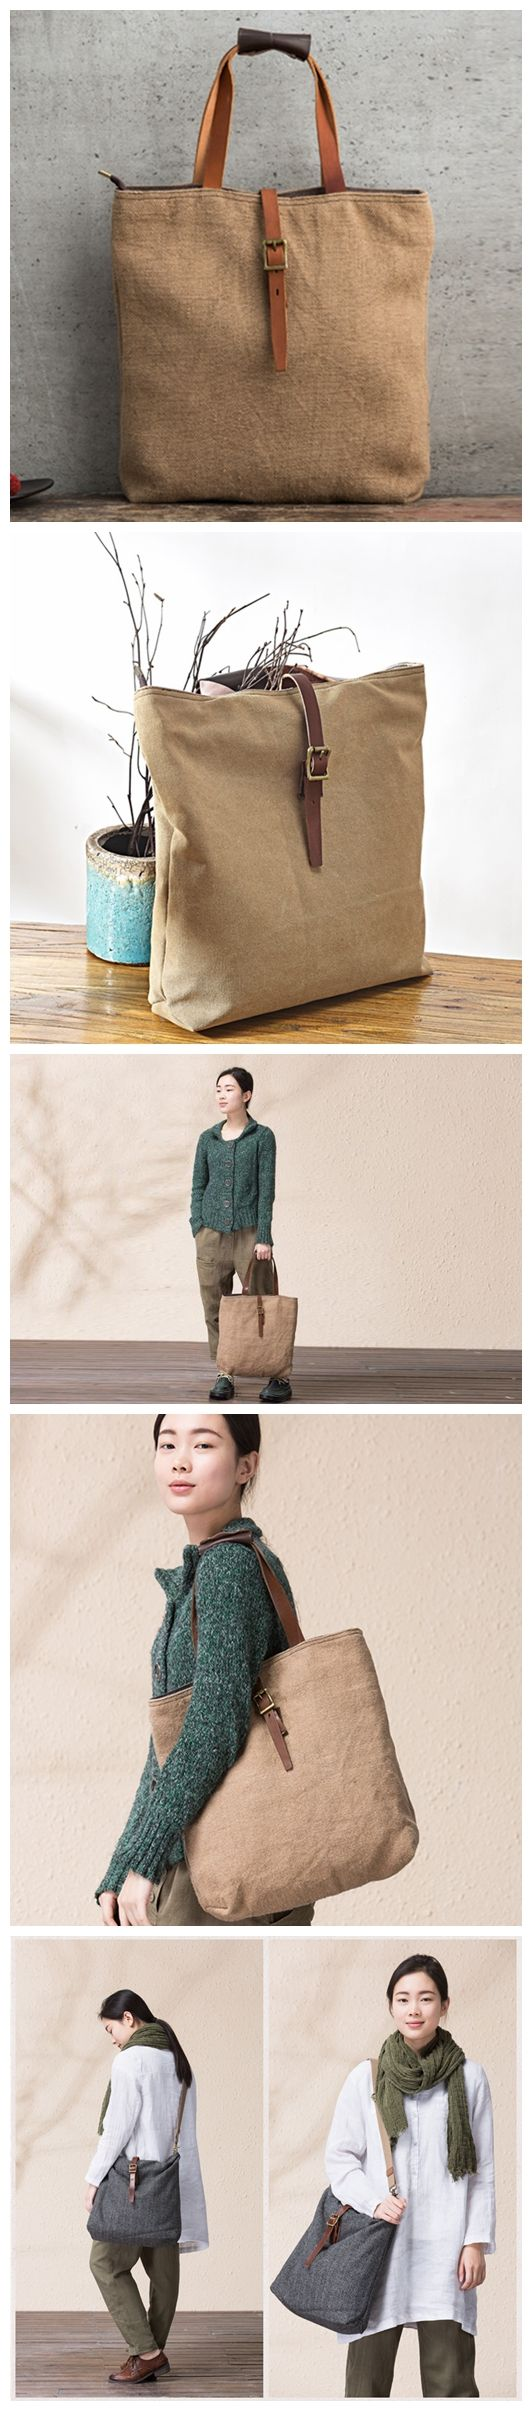 Handmade Canvas Tote Bag Handbag for Women Messenger Bag Shoulder Bag 14099 --------------------------------- - 16oz waxed canvas or Cotton & Linen - Cotton lining - Inside one zipper pocket, one phon